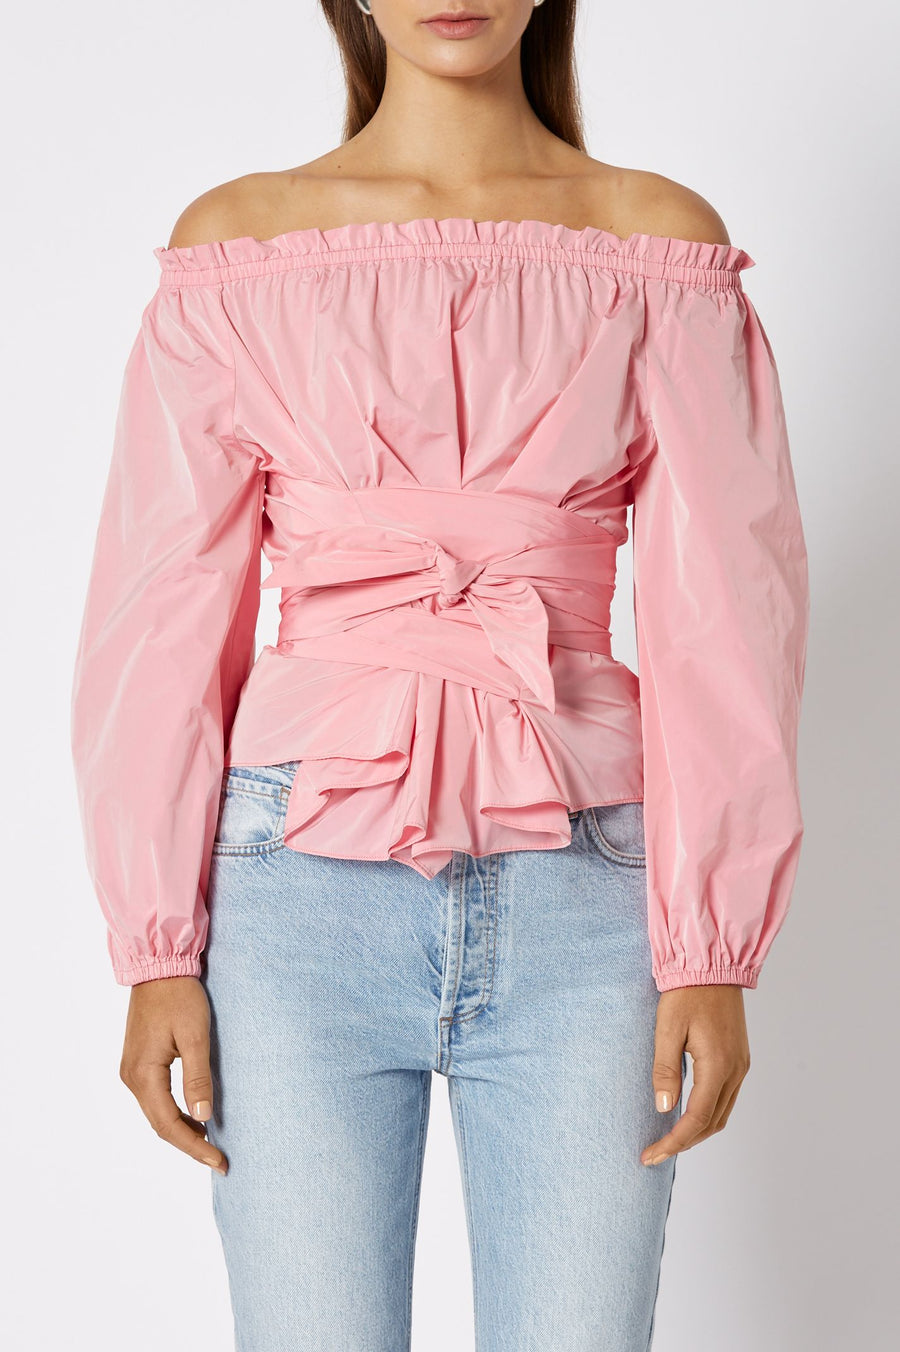 Taffeta Wrap Blouse Pale Pink, Loose Fit, Puffed Long Sleeves, Waist Belt, Off the Shoulder Neckline